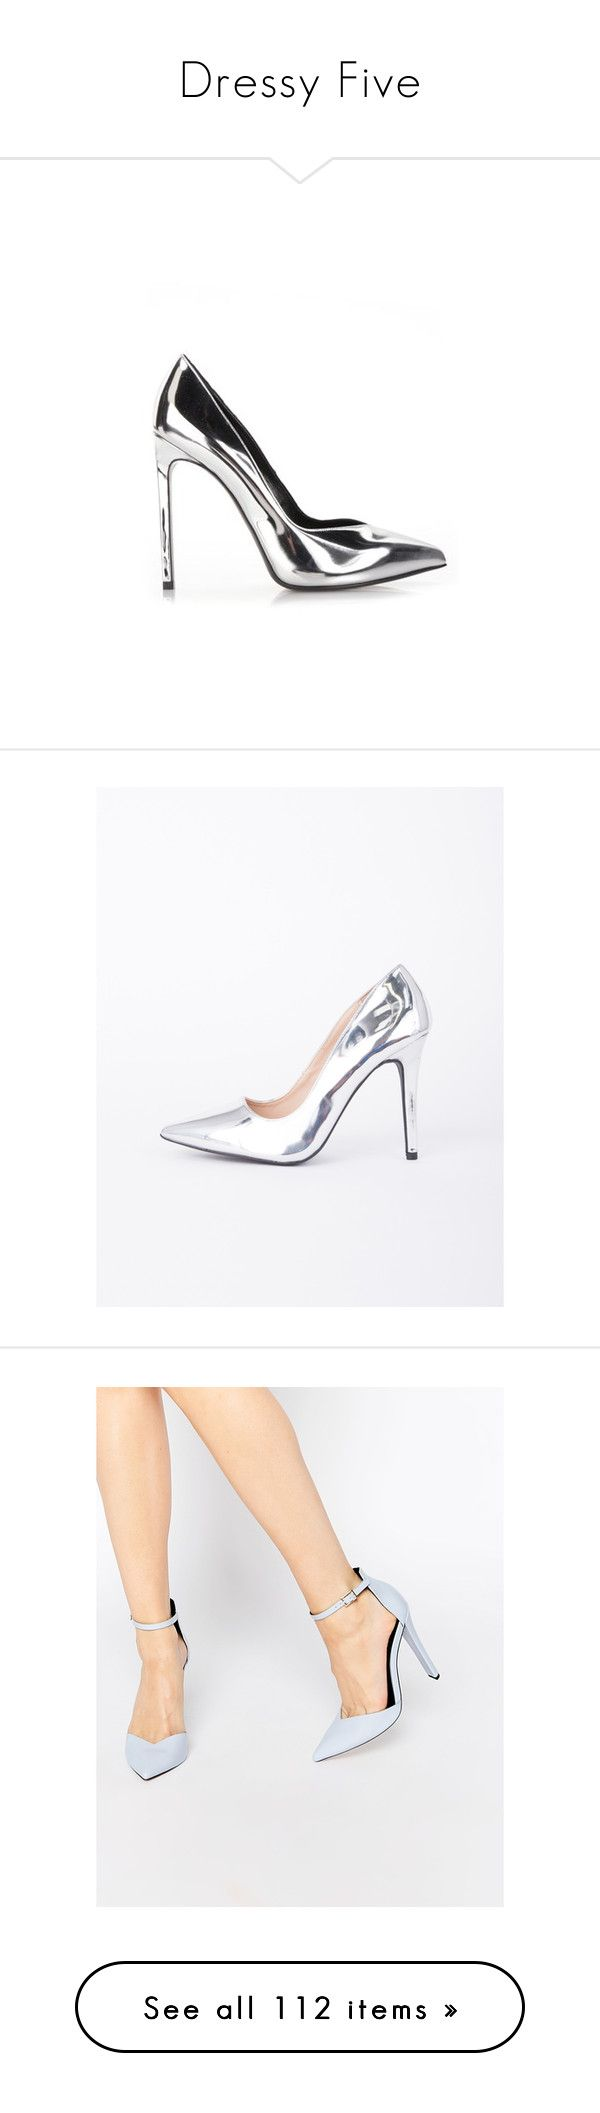 """Dressy Five"" by erieasthic ❤ liked on Polyvore featuring shoes, pumps, silver, silver high heel shoes, pointy-toe pumps, silver pointy toe pumps, silver high heel pumps, high heel pumps, metallic shoes and metallic pumps"